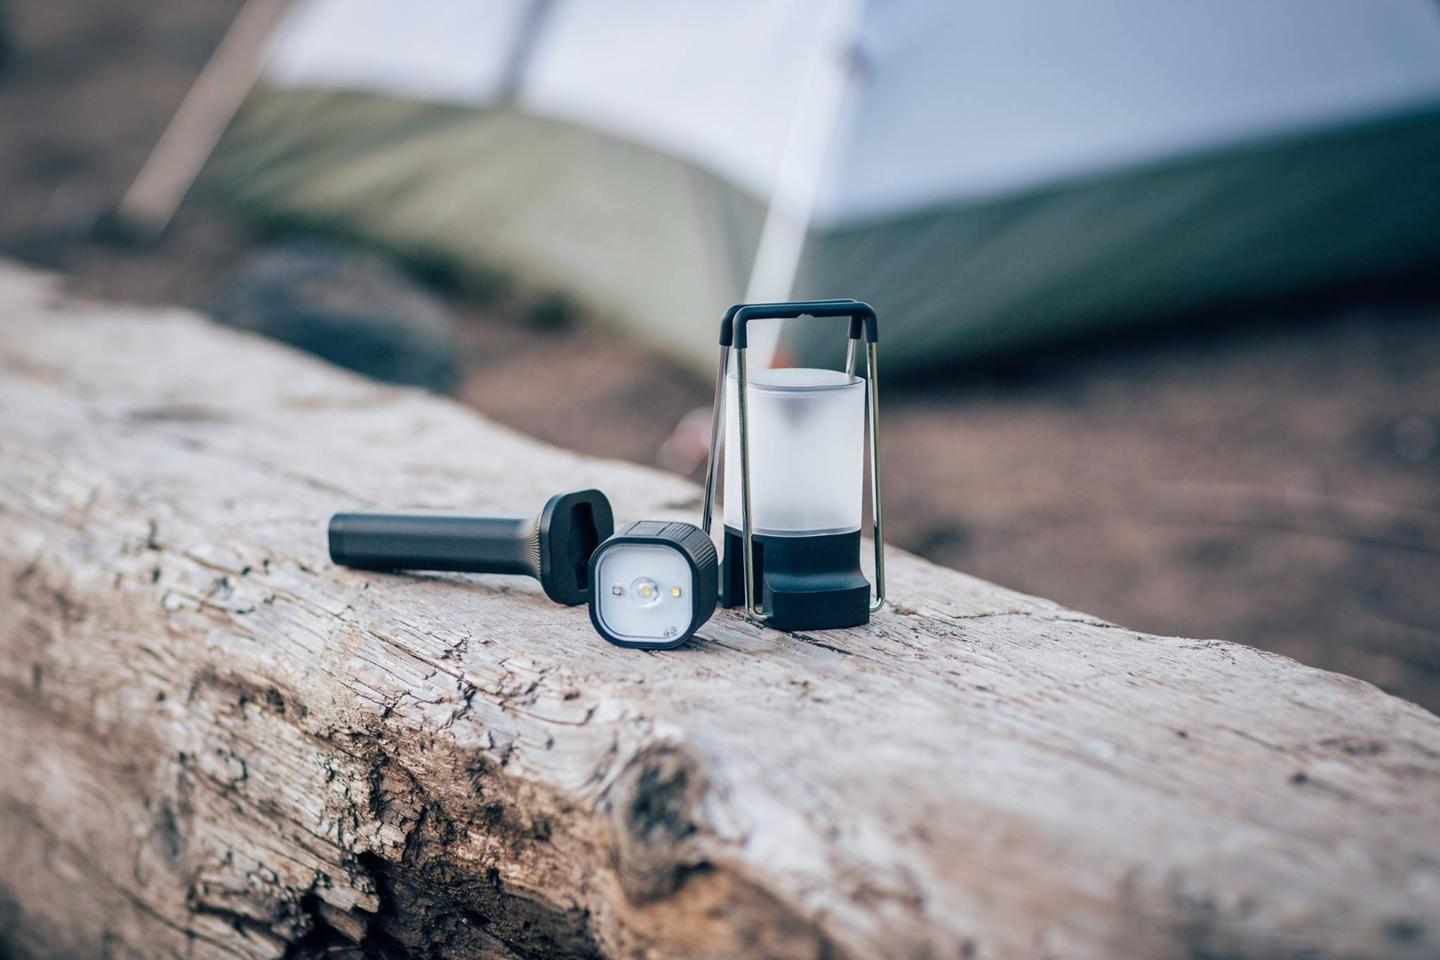 The PALlight pops into the flashlight handle or lantern to give you different styles of light